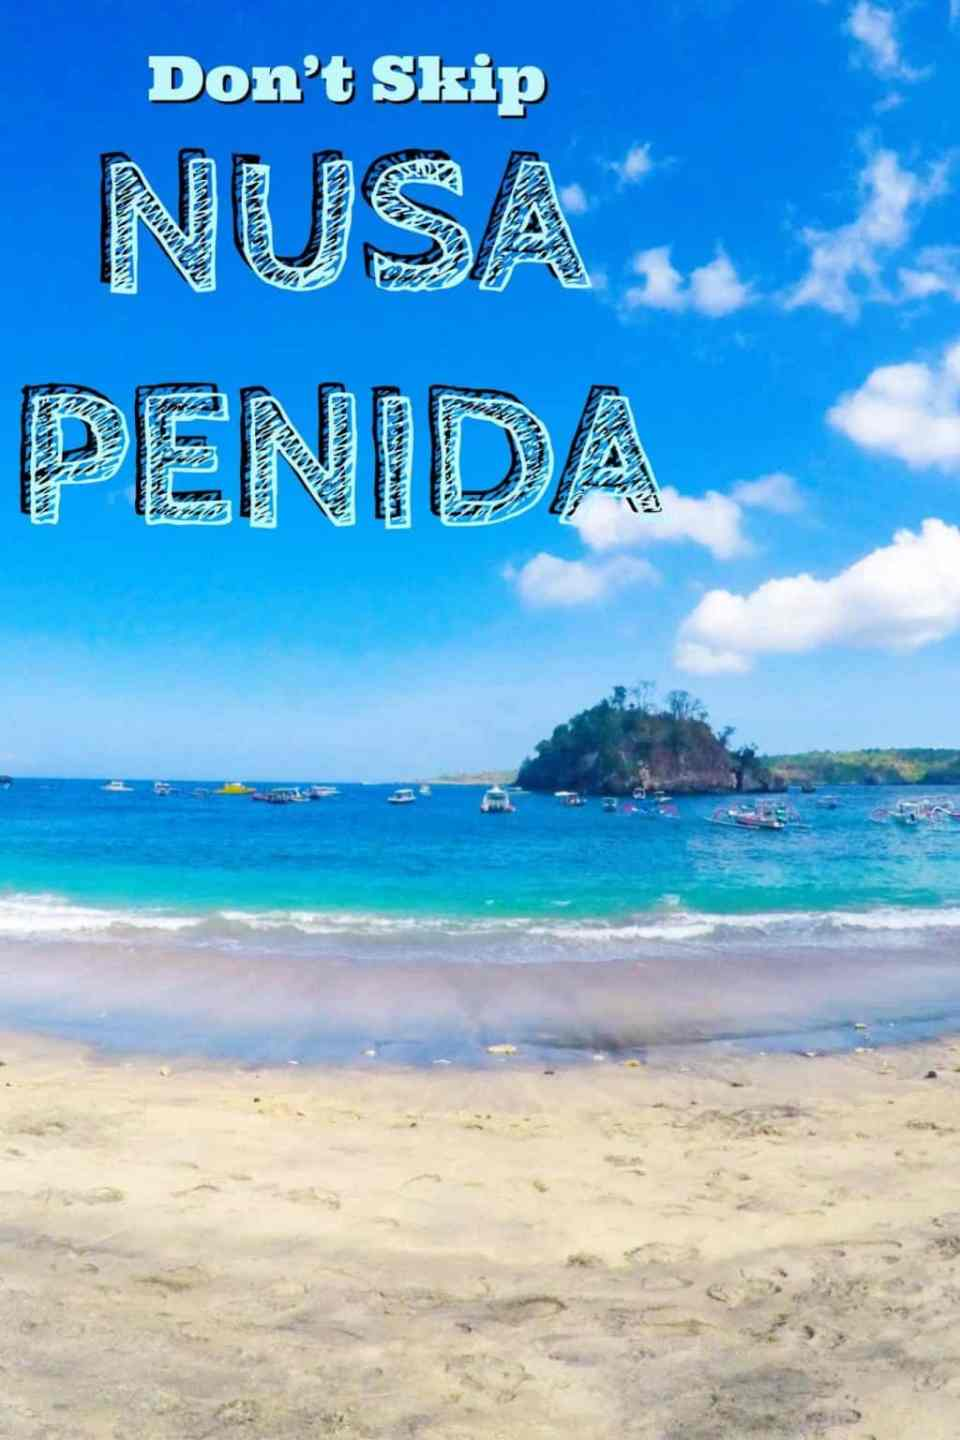 Don't Skip Nusa Penida! This small island was, for me, the real Bali and my favourite part of my trip. I'm sharing the best things to do in Nusa Penida and why I loved it so much. Click for my tips! #Bali #Indonesia #NusaPenida